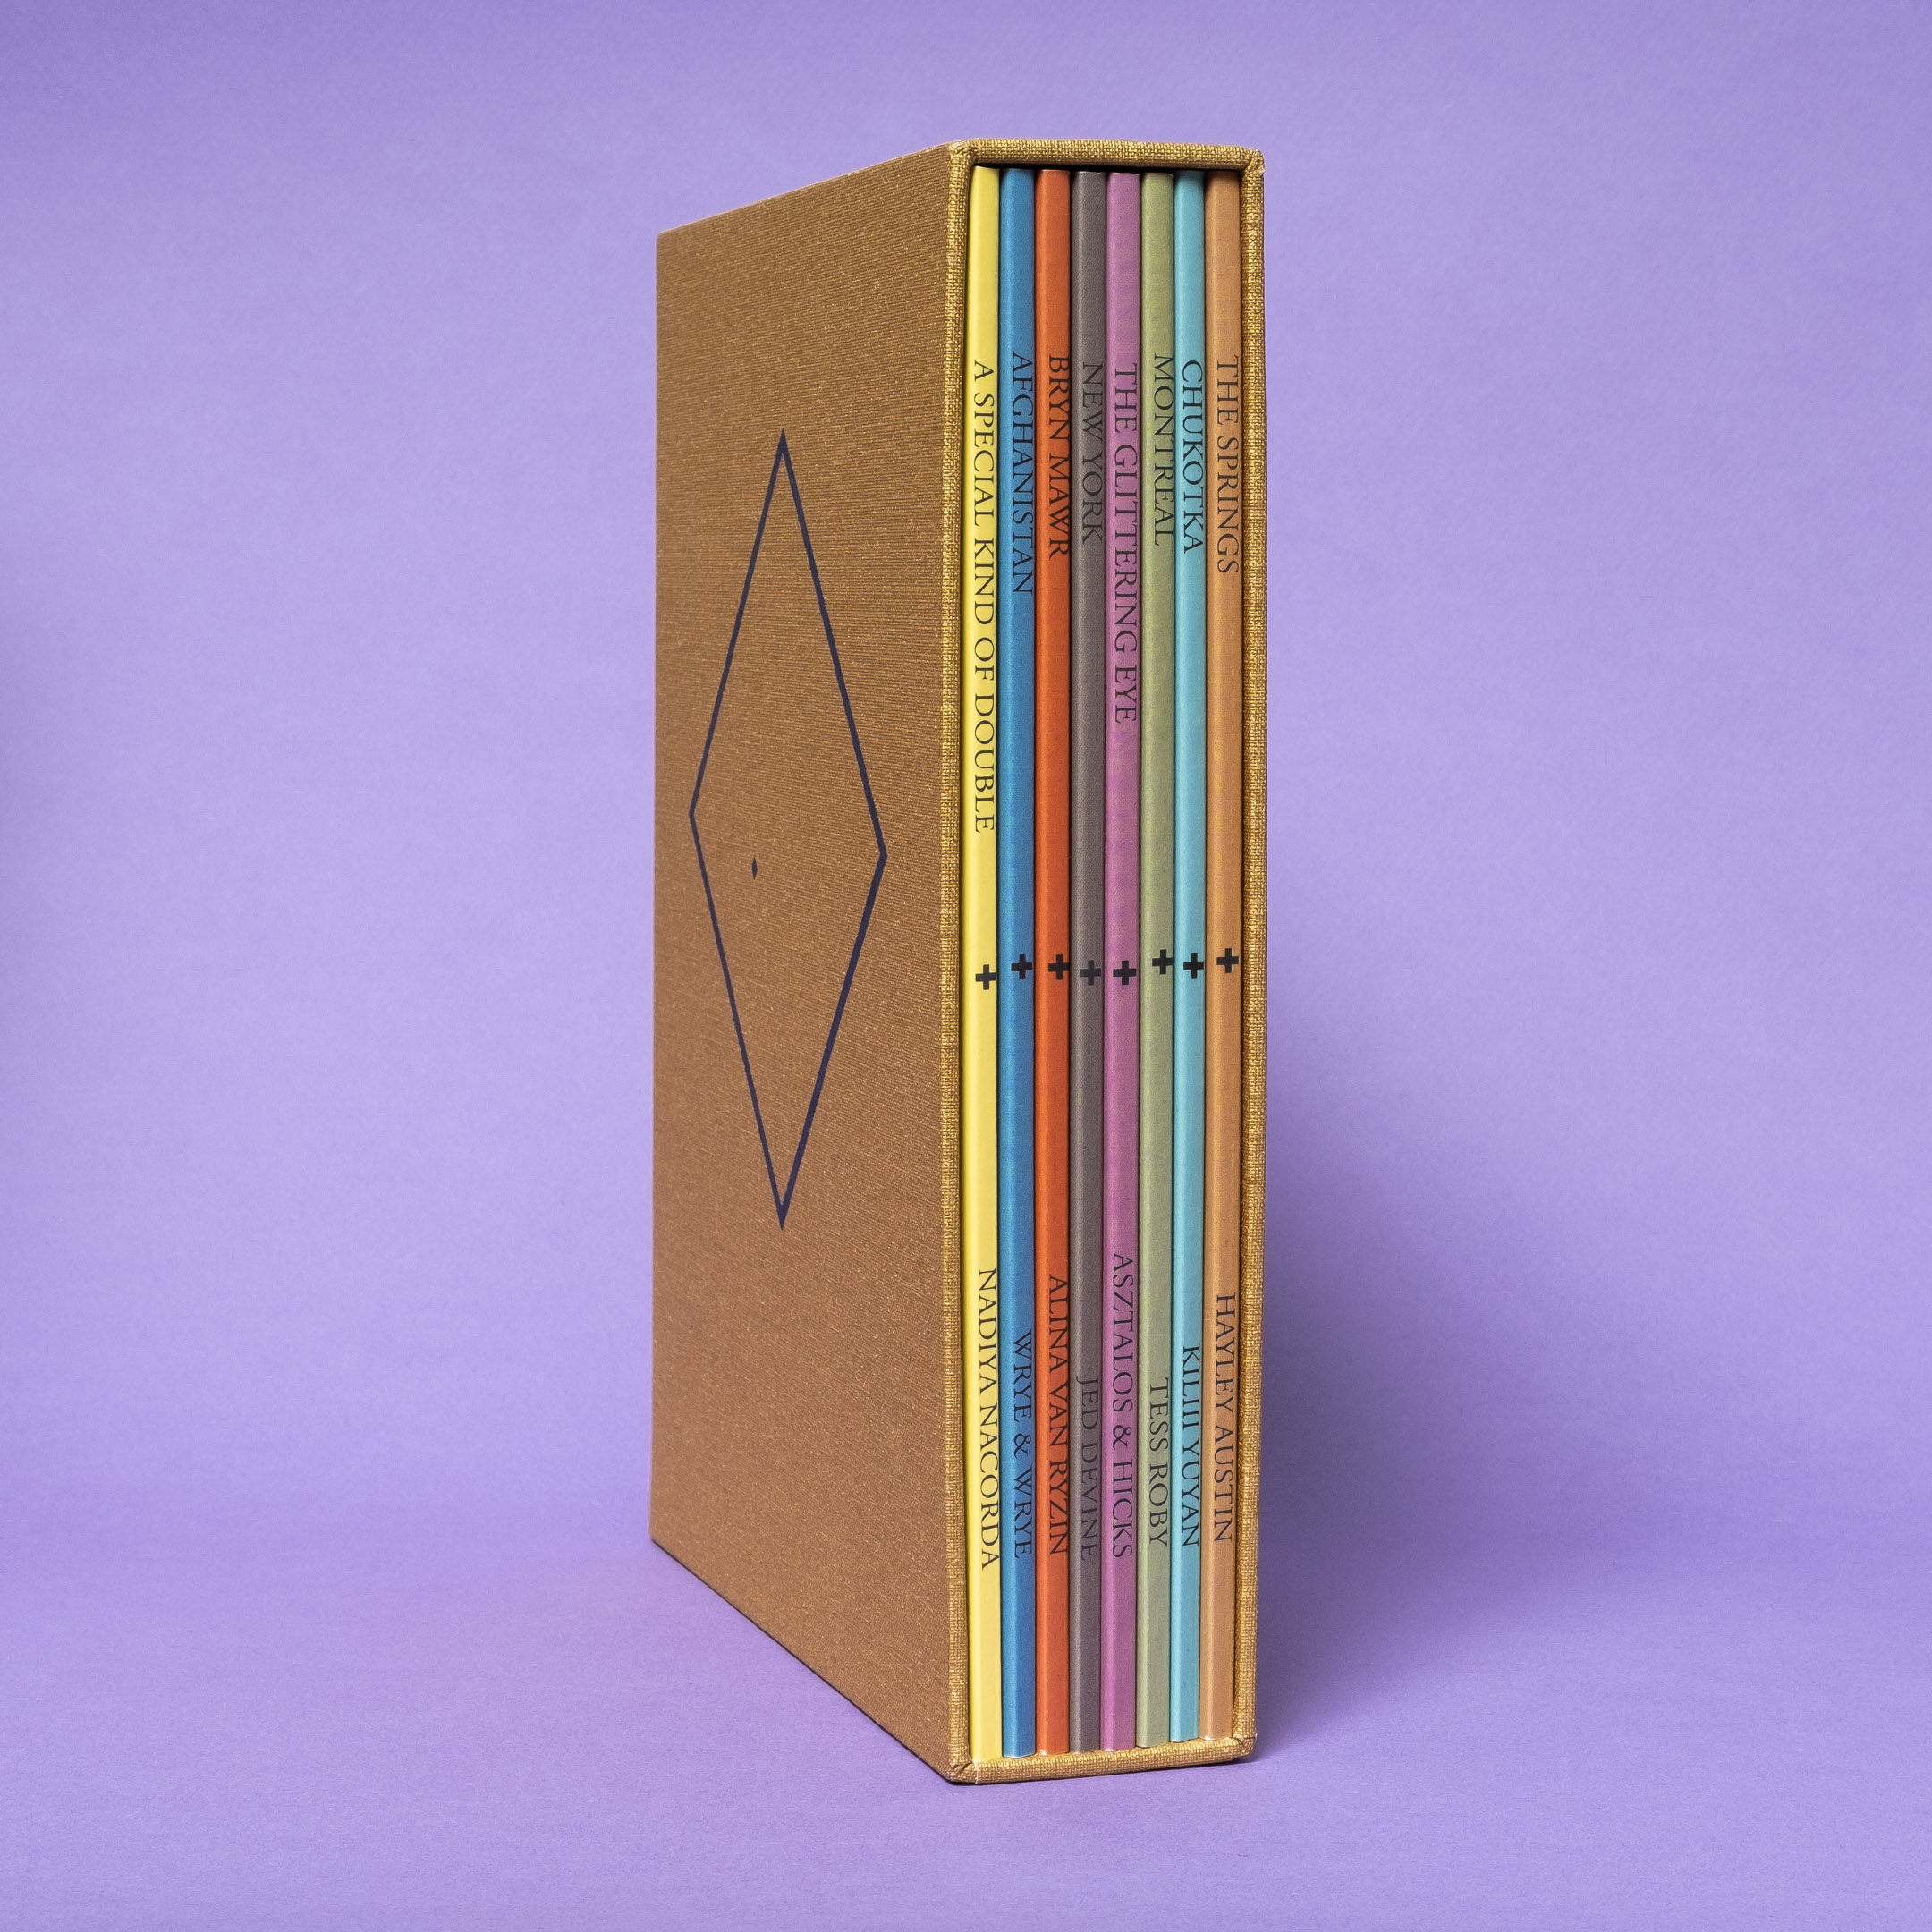 Slipcase with eight different colored books